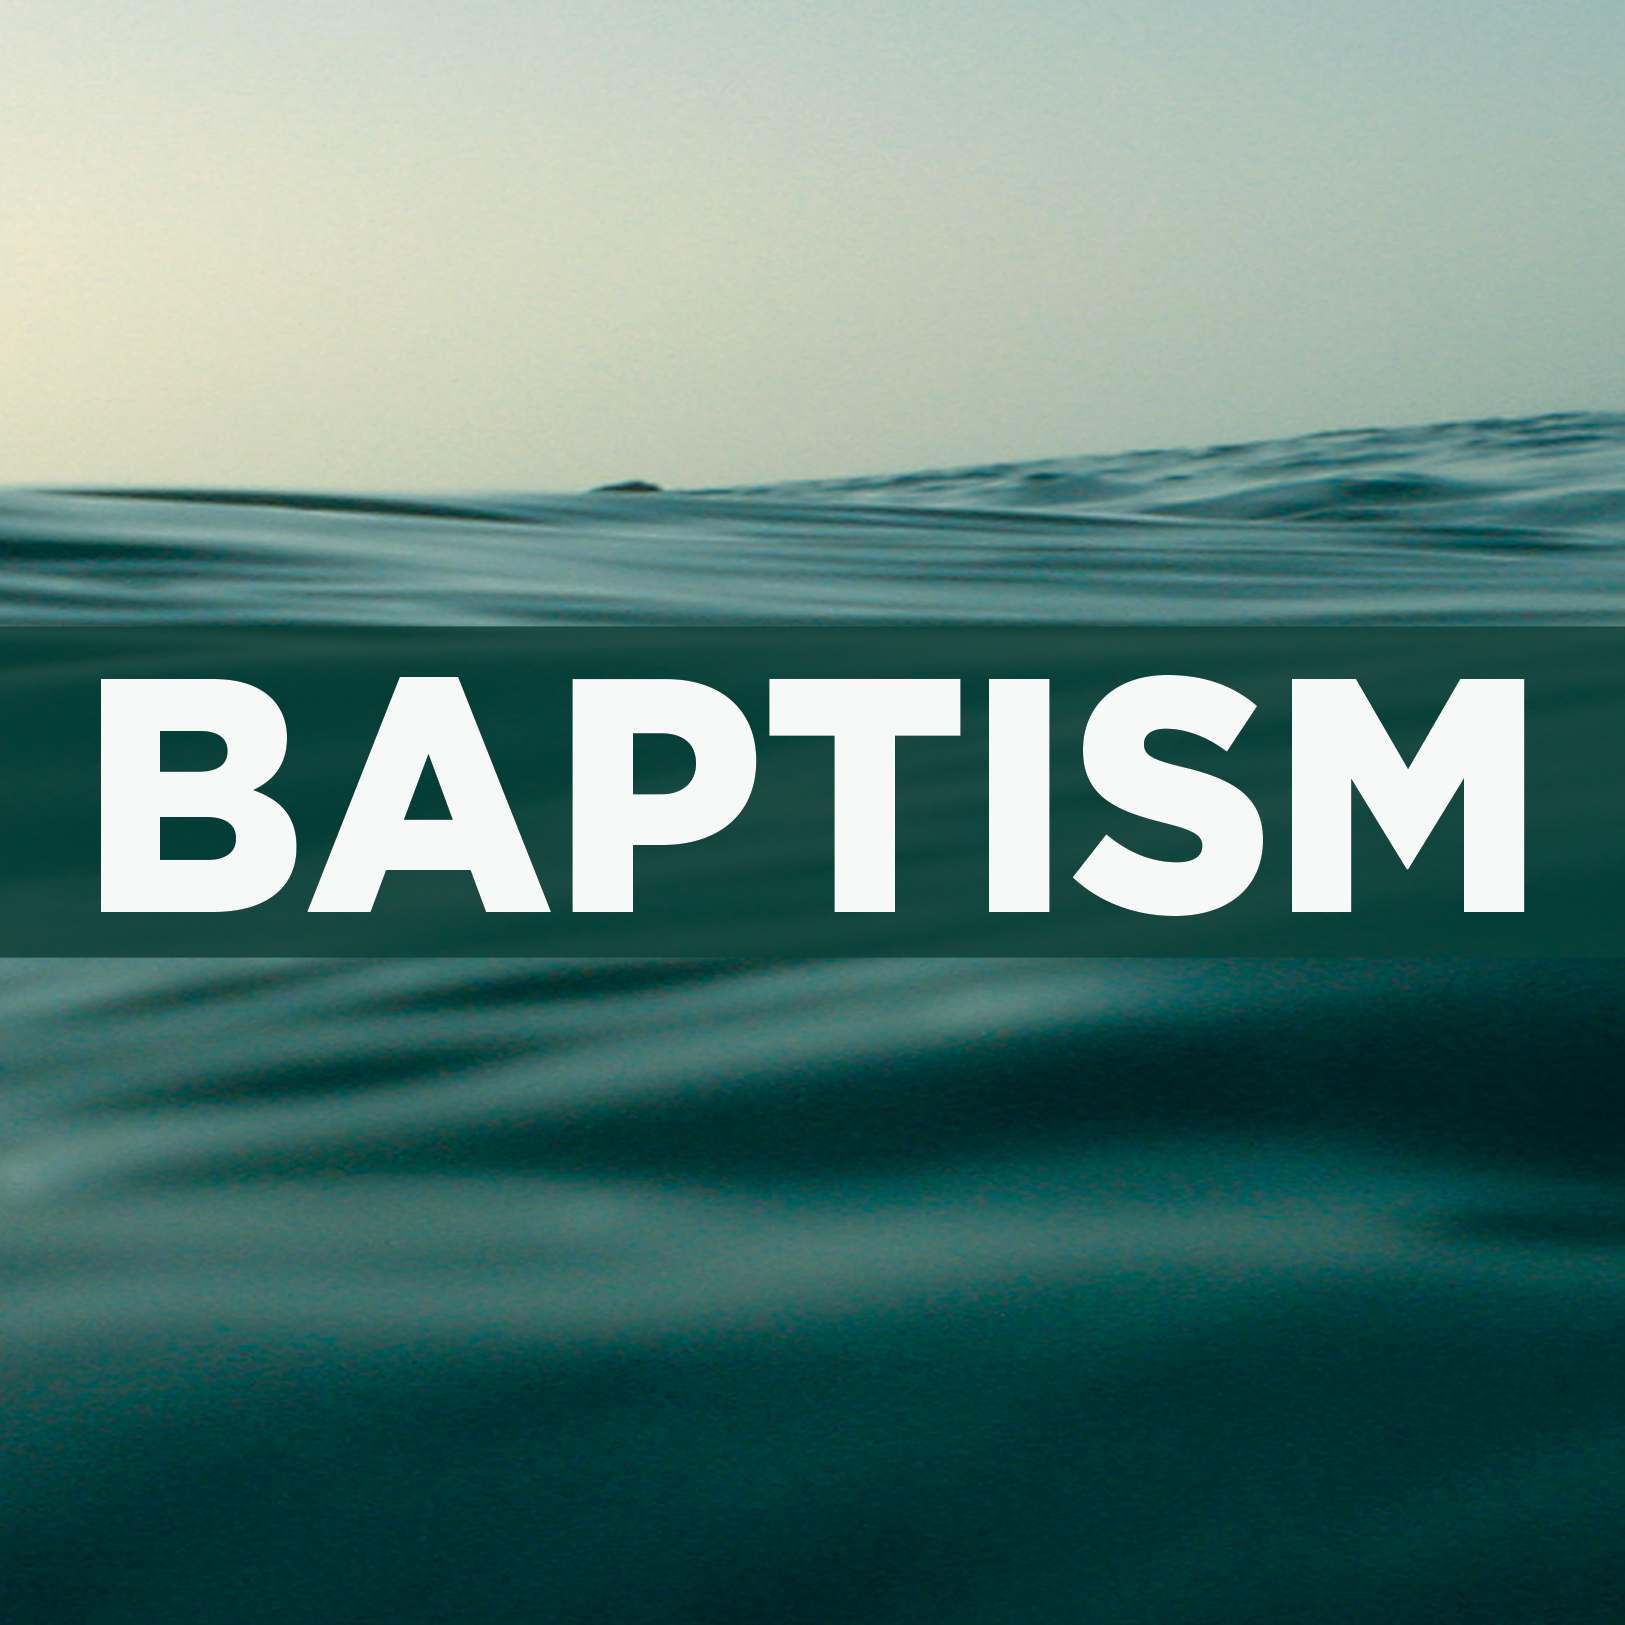 BAPTISM | SEPTEMBER 16   Are you interested in taking your next step through baptism? Our next baptism will be on September 16th. Click below for more info or to sign up.    SIGN UP HERE